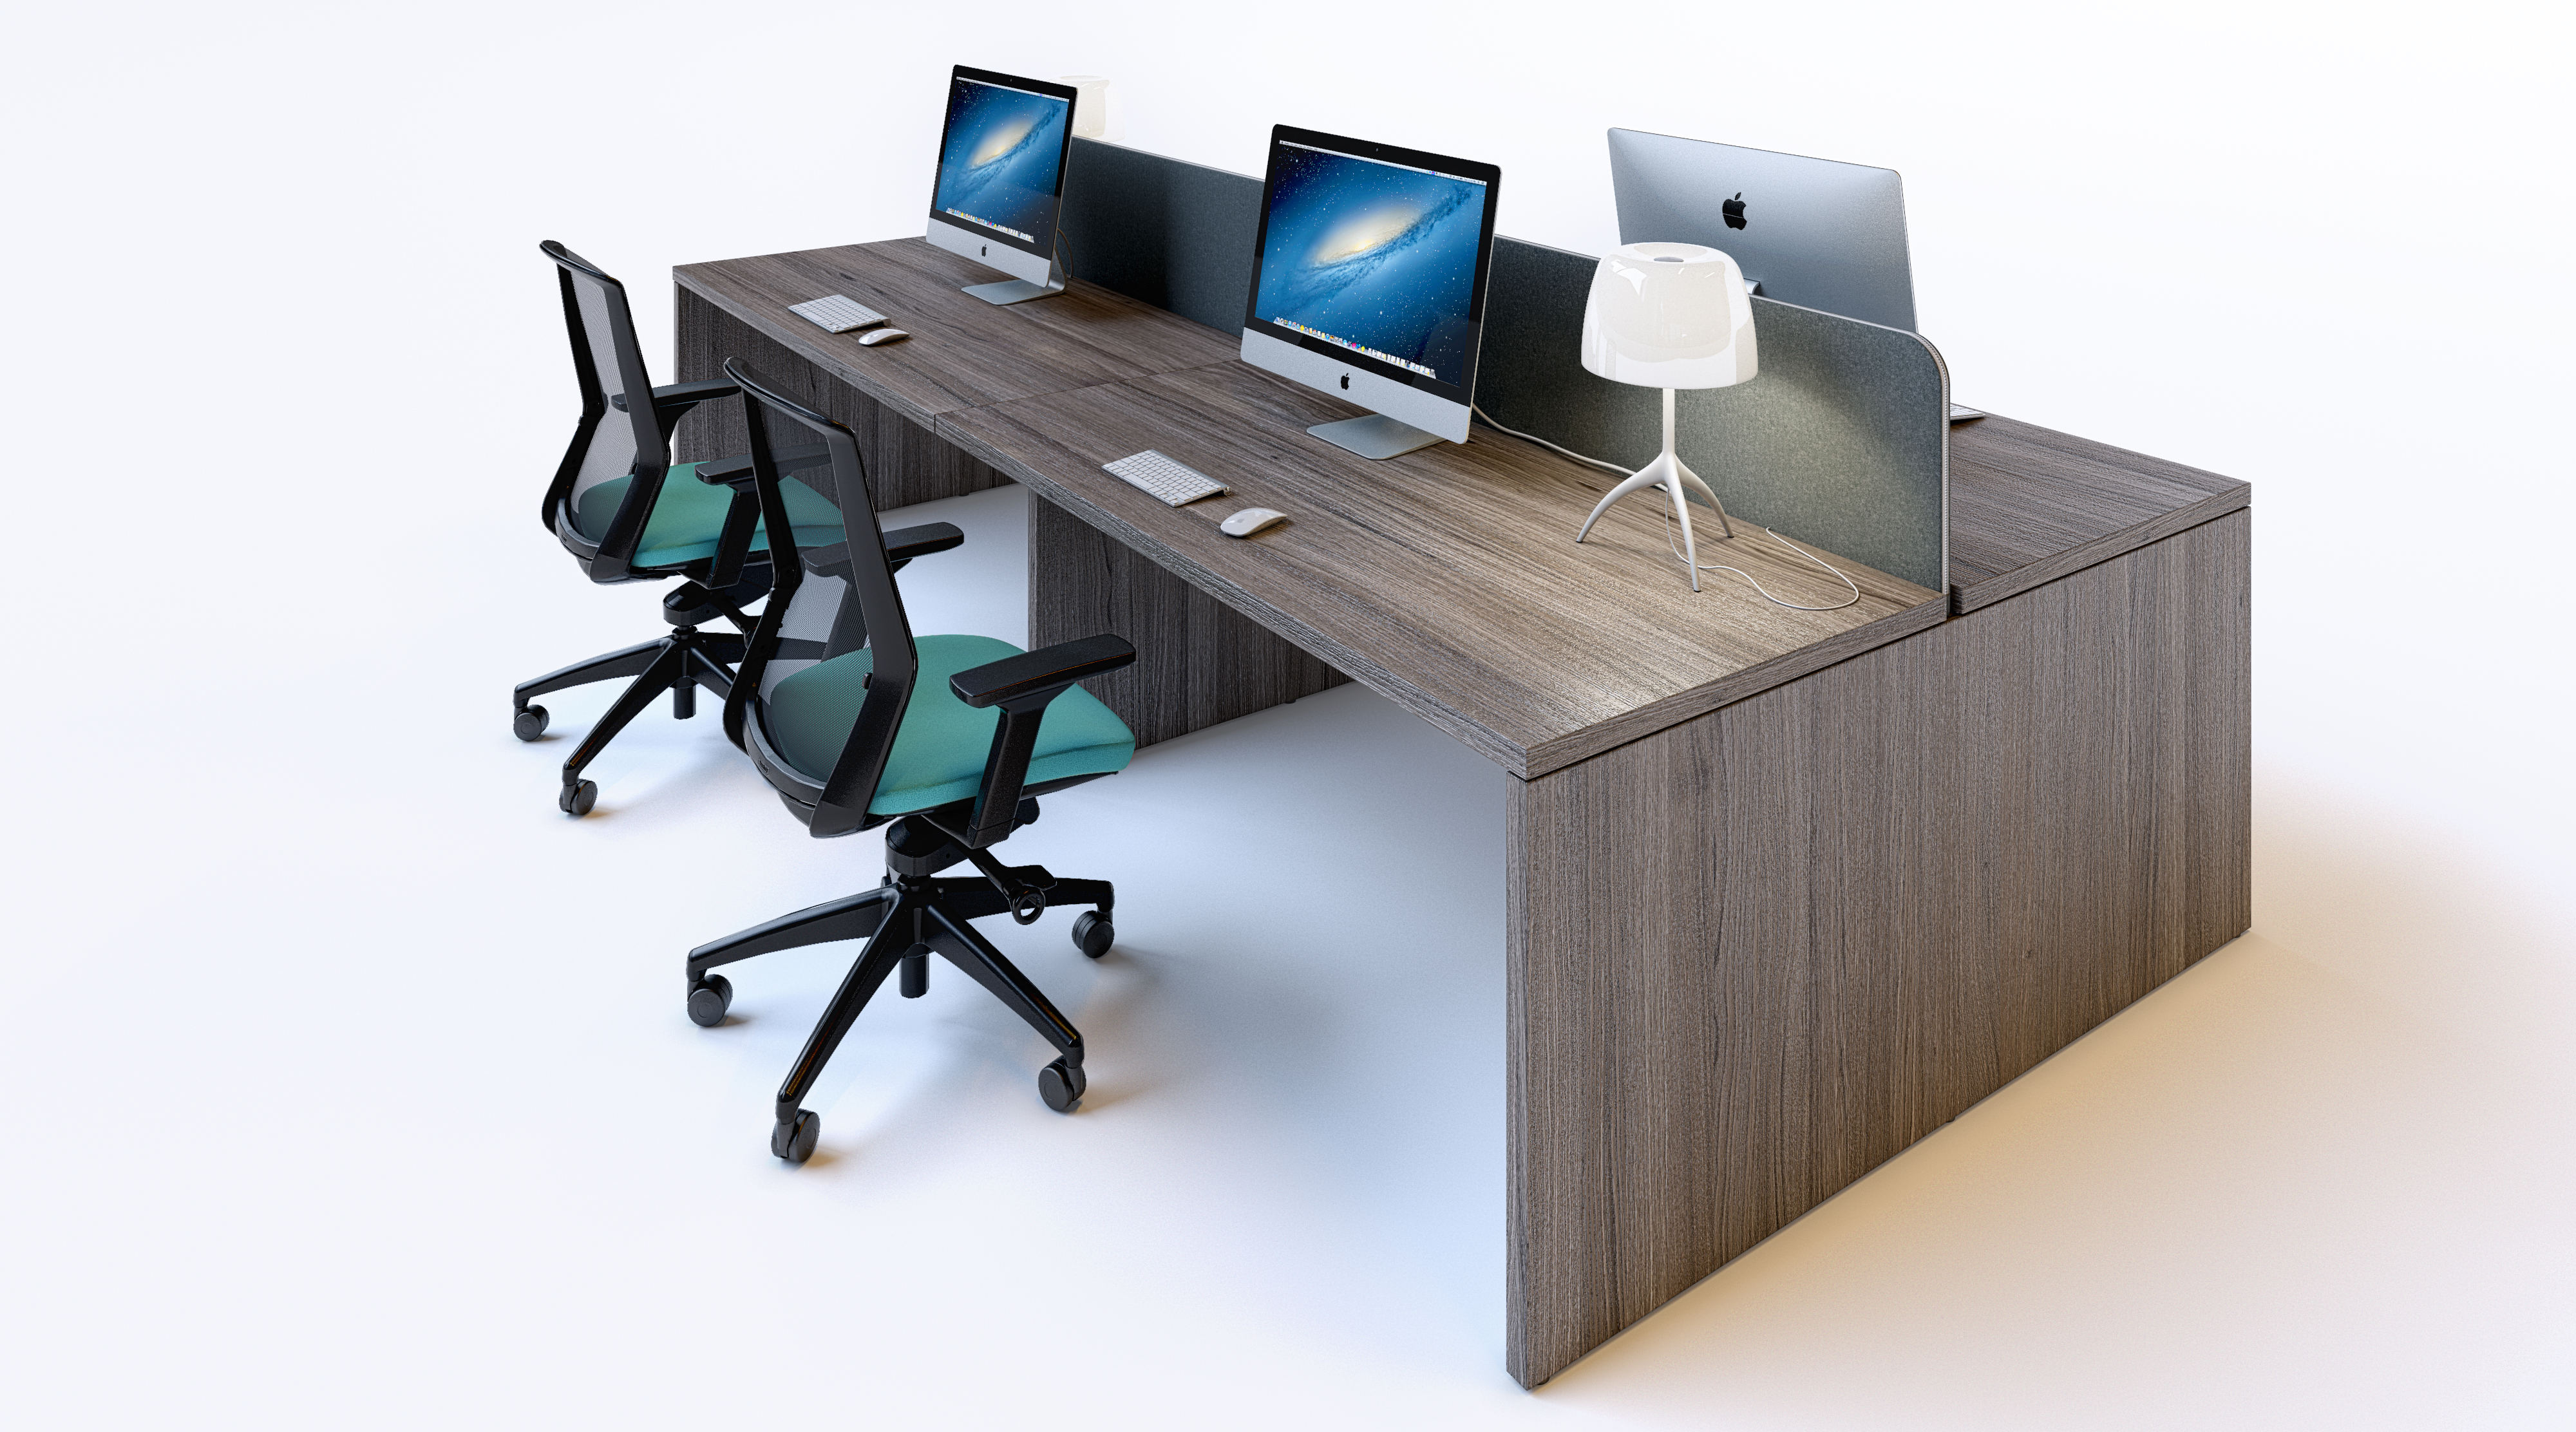 10133_Offspring_desk_view_Camera_2_Wood_